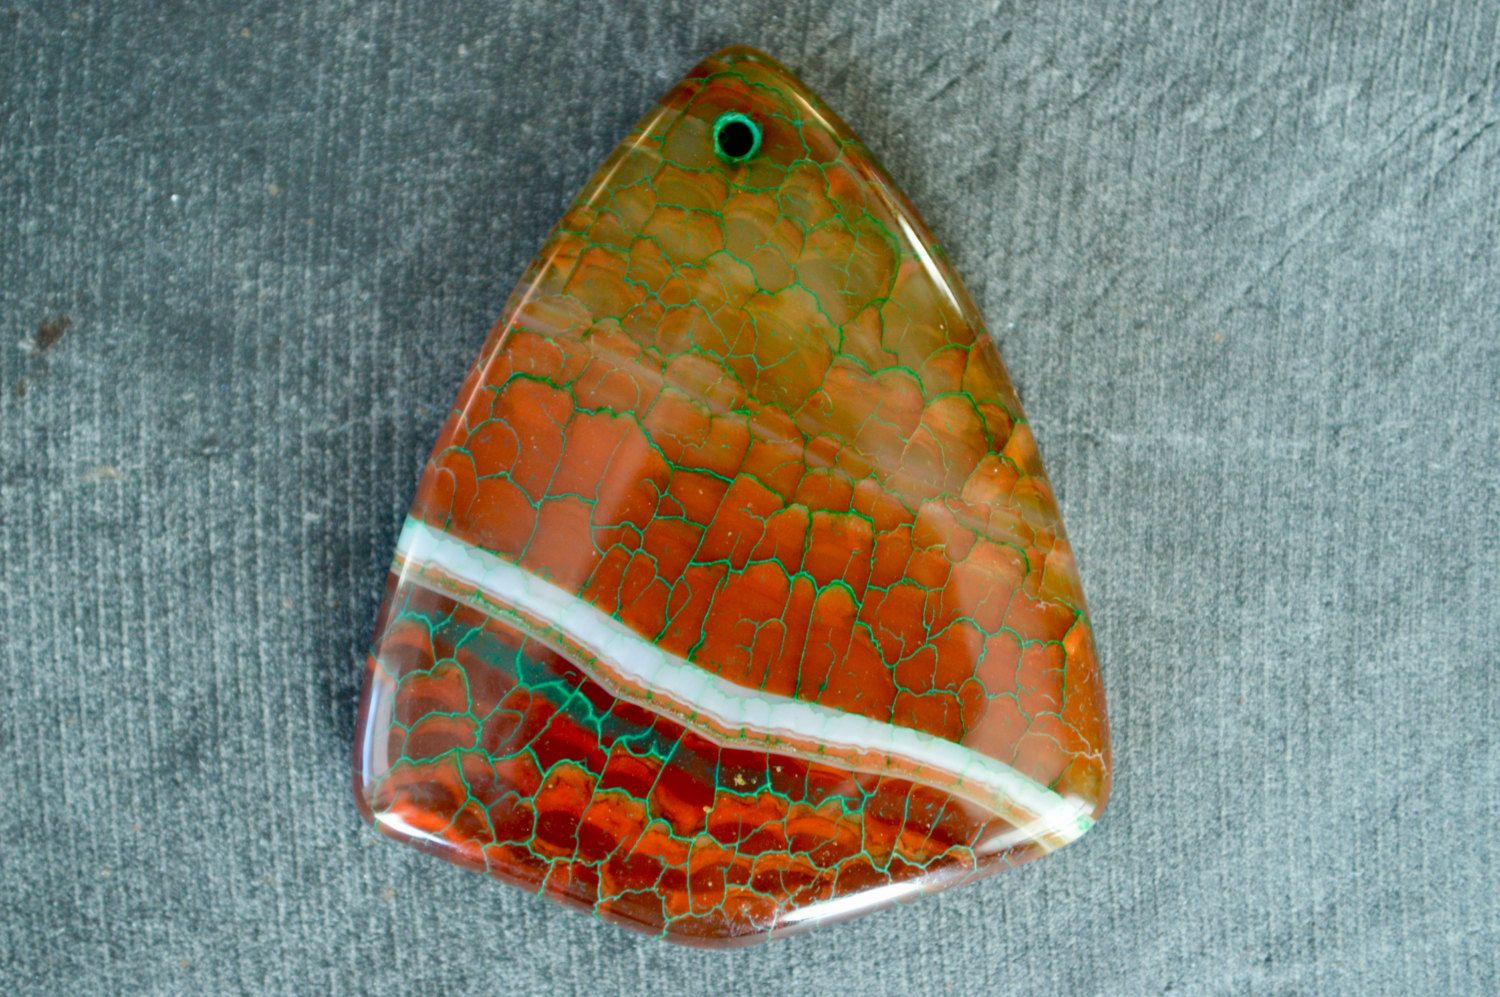 45mm dragon veins agate shield shape stone pendant stone pendant 45mm dragon veins agate shield shape stone pendant stone pendant 45x36x6mm natural stone brown green stone pendant aloadofball Image collections